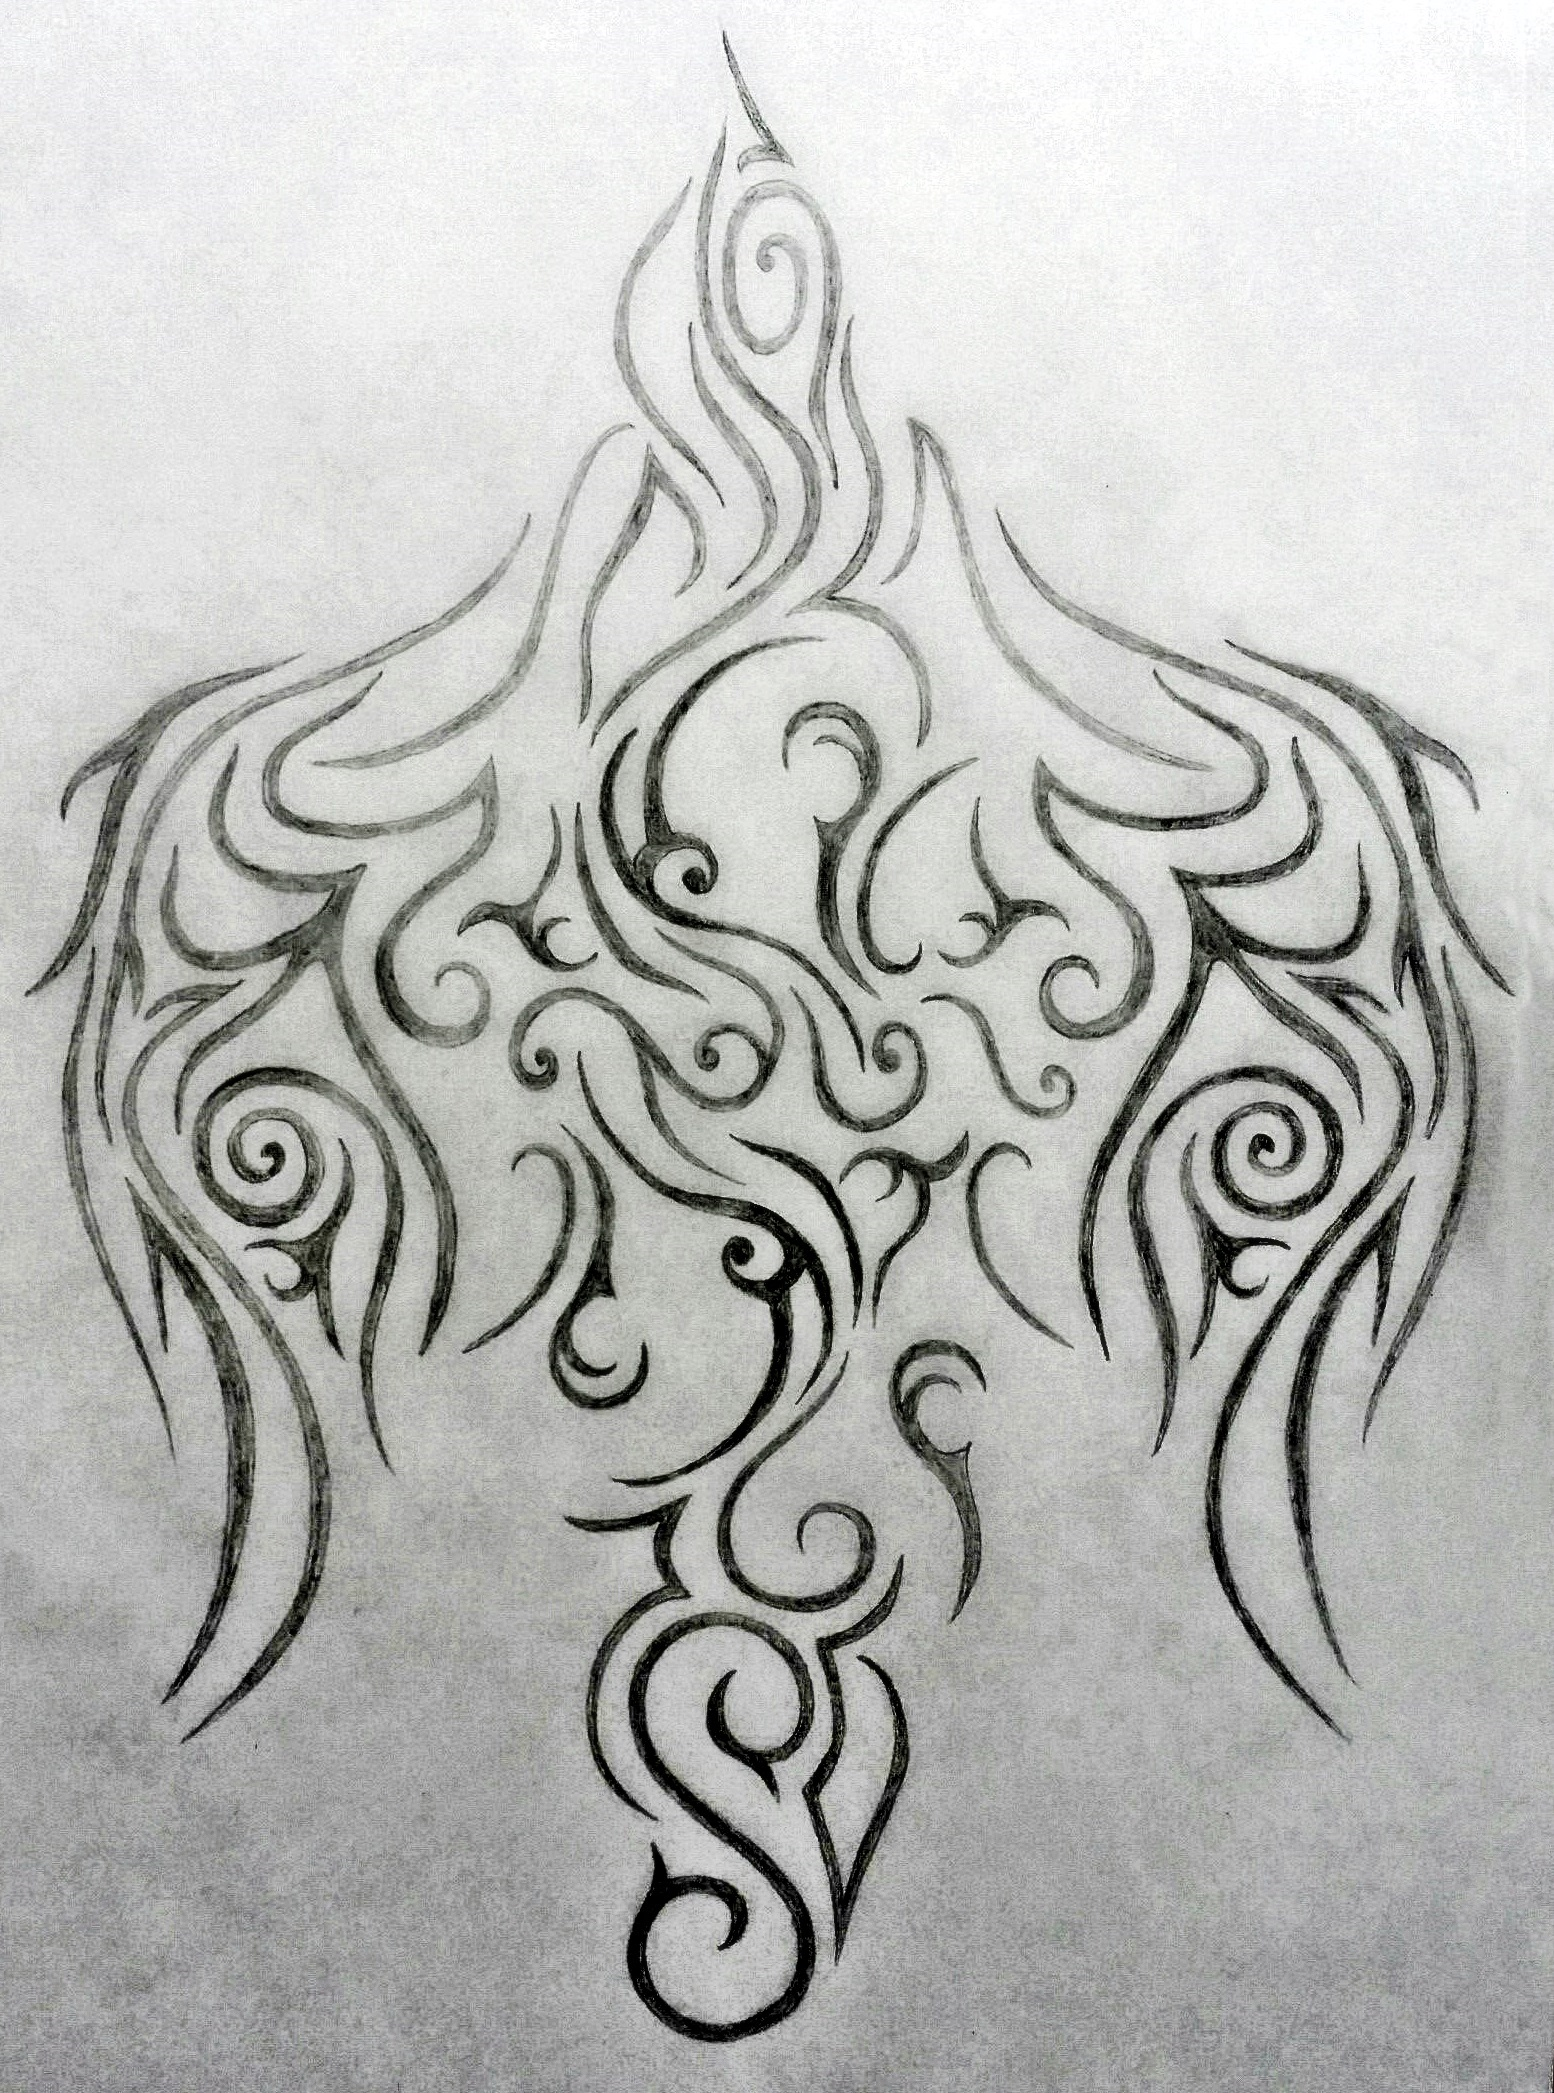 capricorn rising a sacred tattoo design for self reinvention tania marie. Black Bedroom Furniture Sets. Home Design Ideas